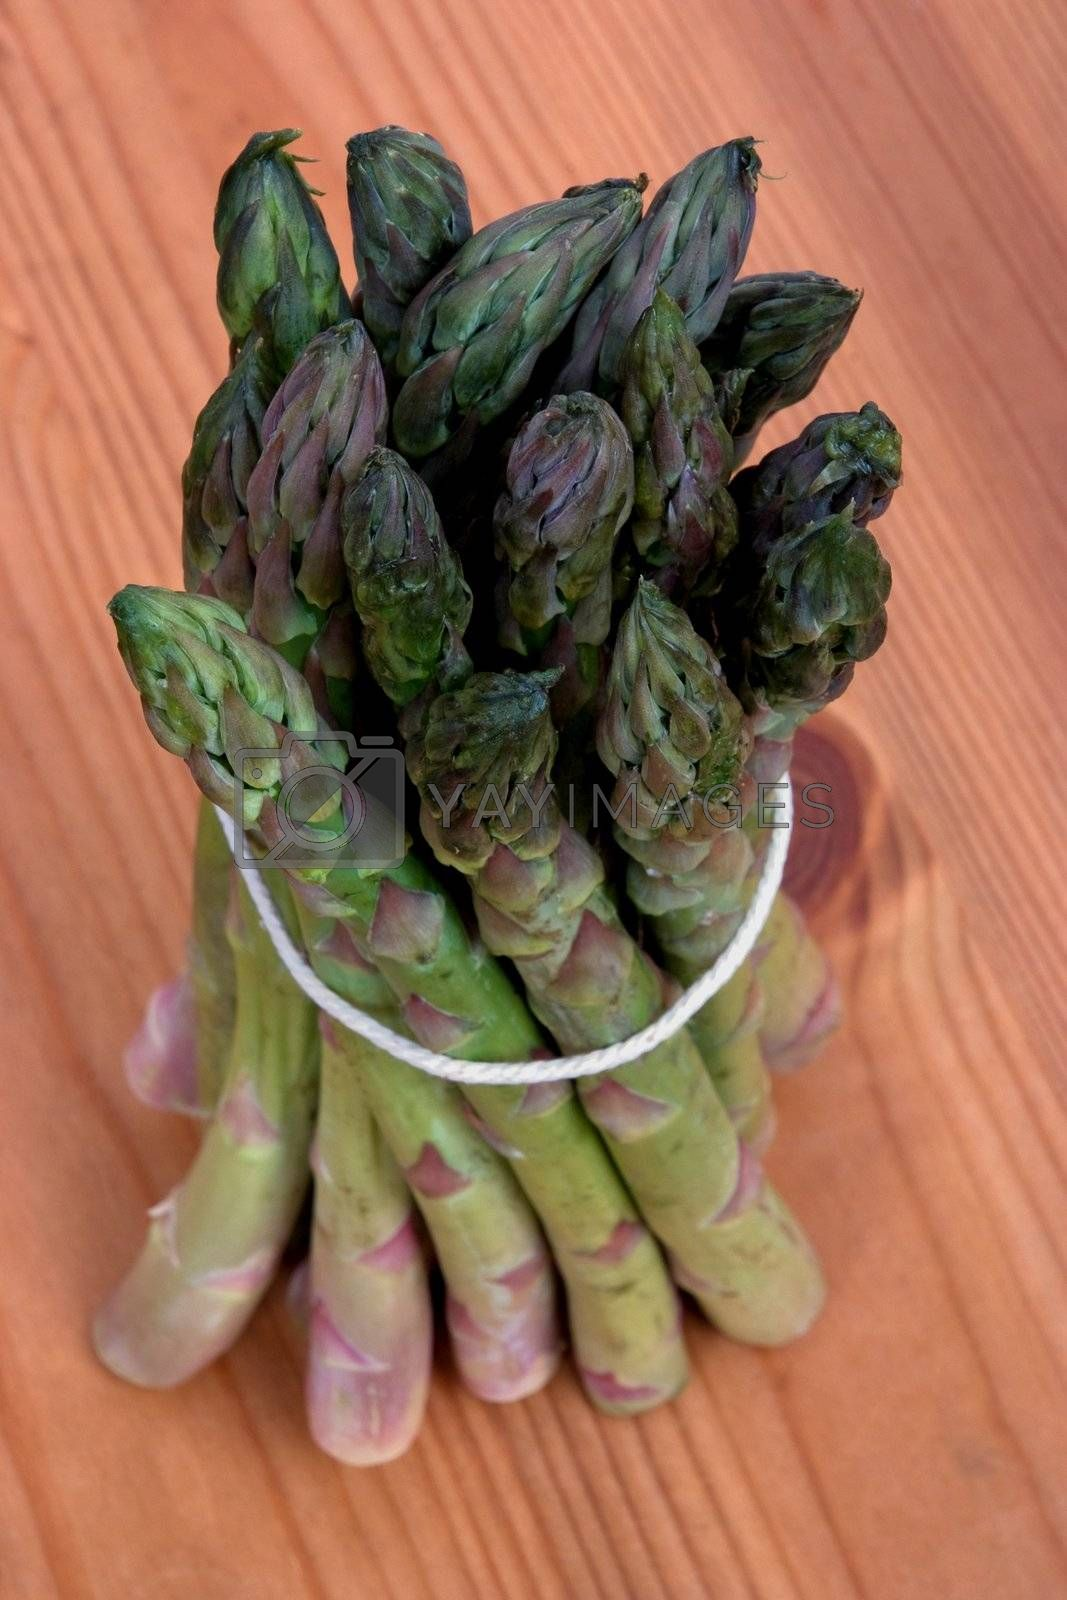 A bundle of asparagus tied up on a wooden work surface